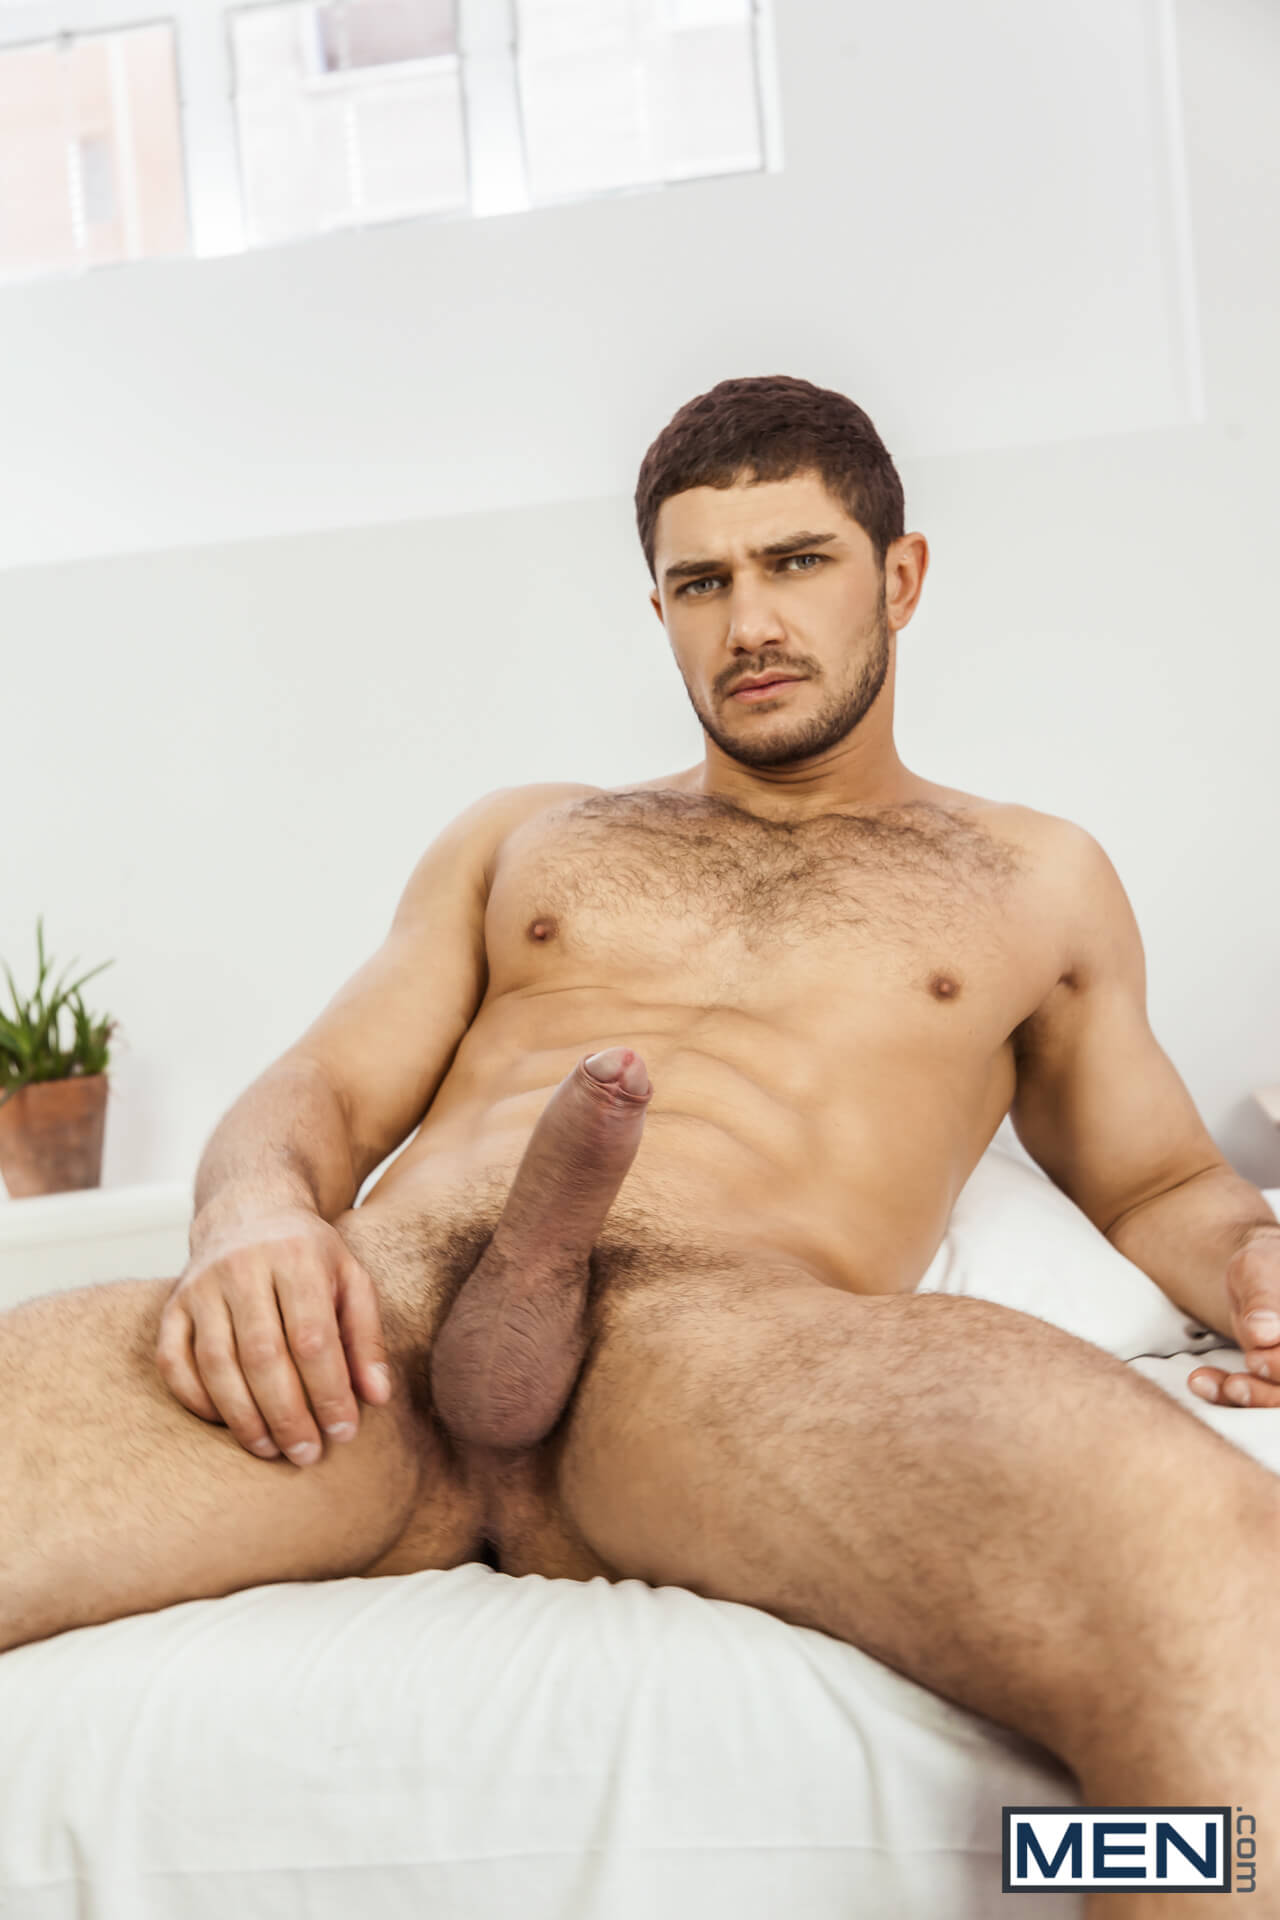 men gods of men welcomed seduction dato foland massimo piano gay porn blog image 7